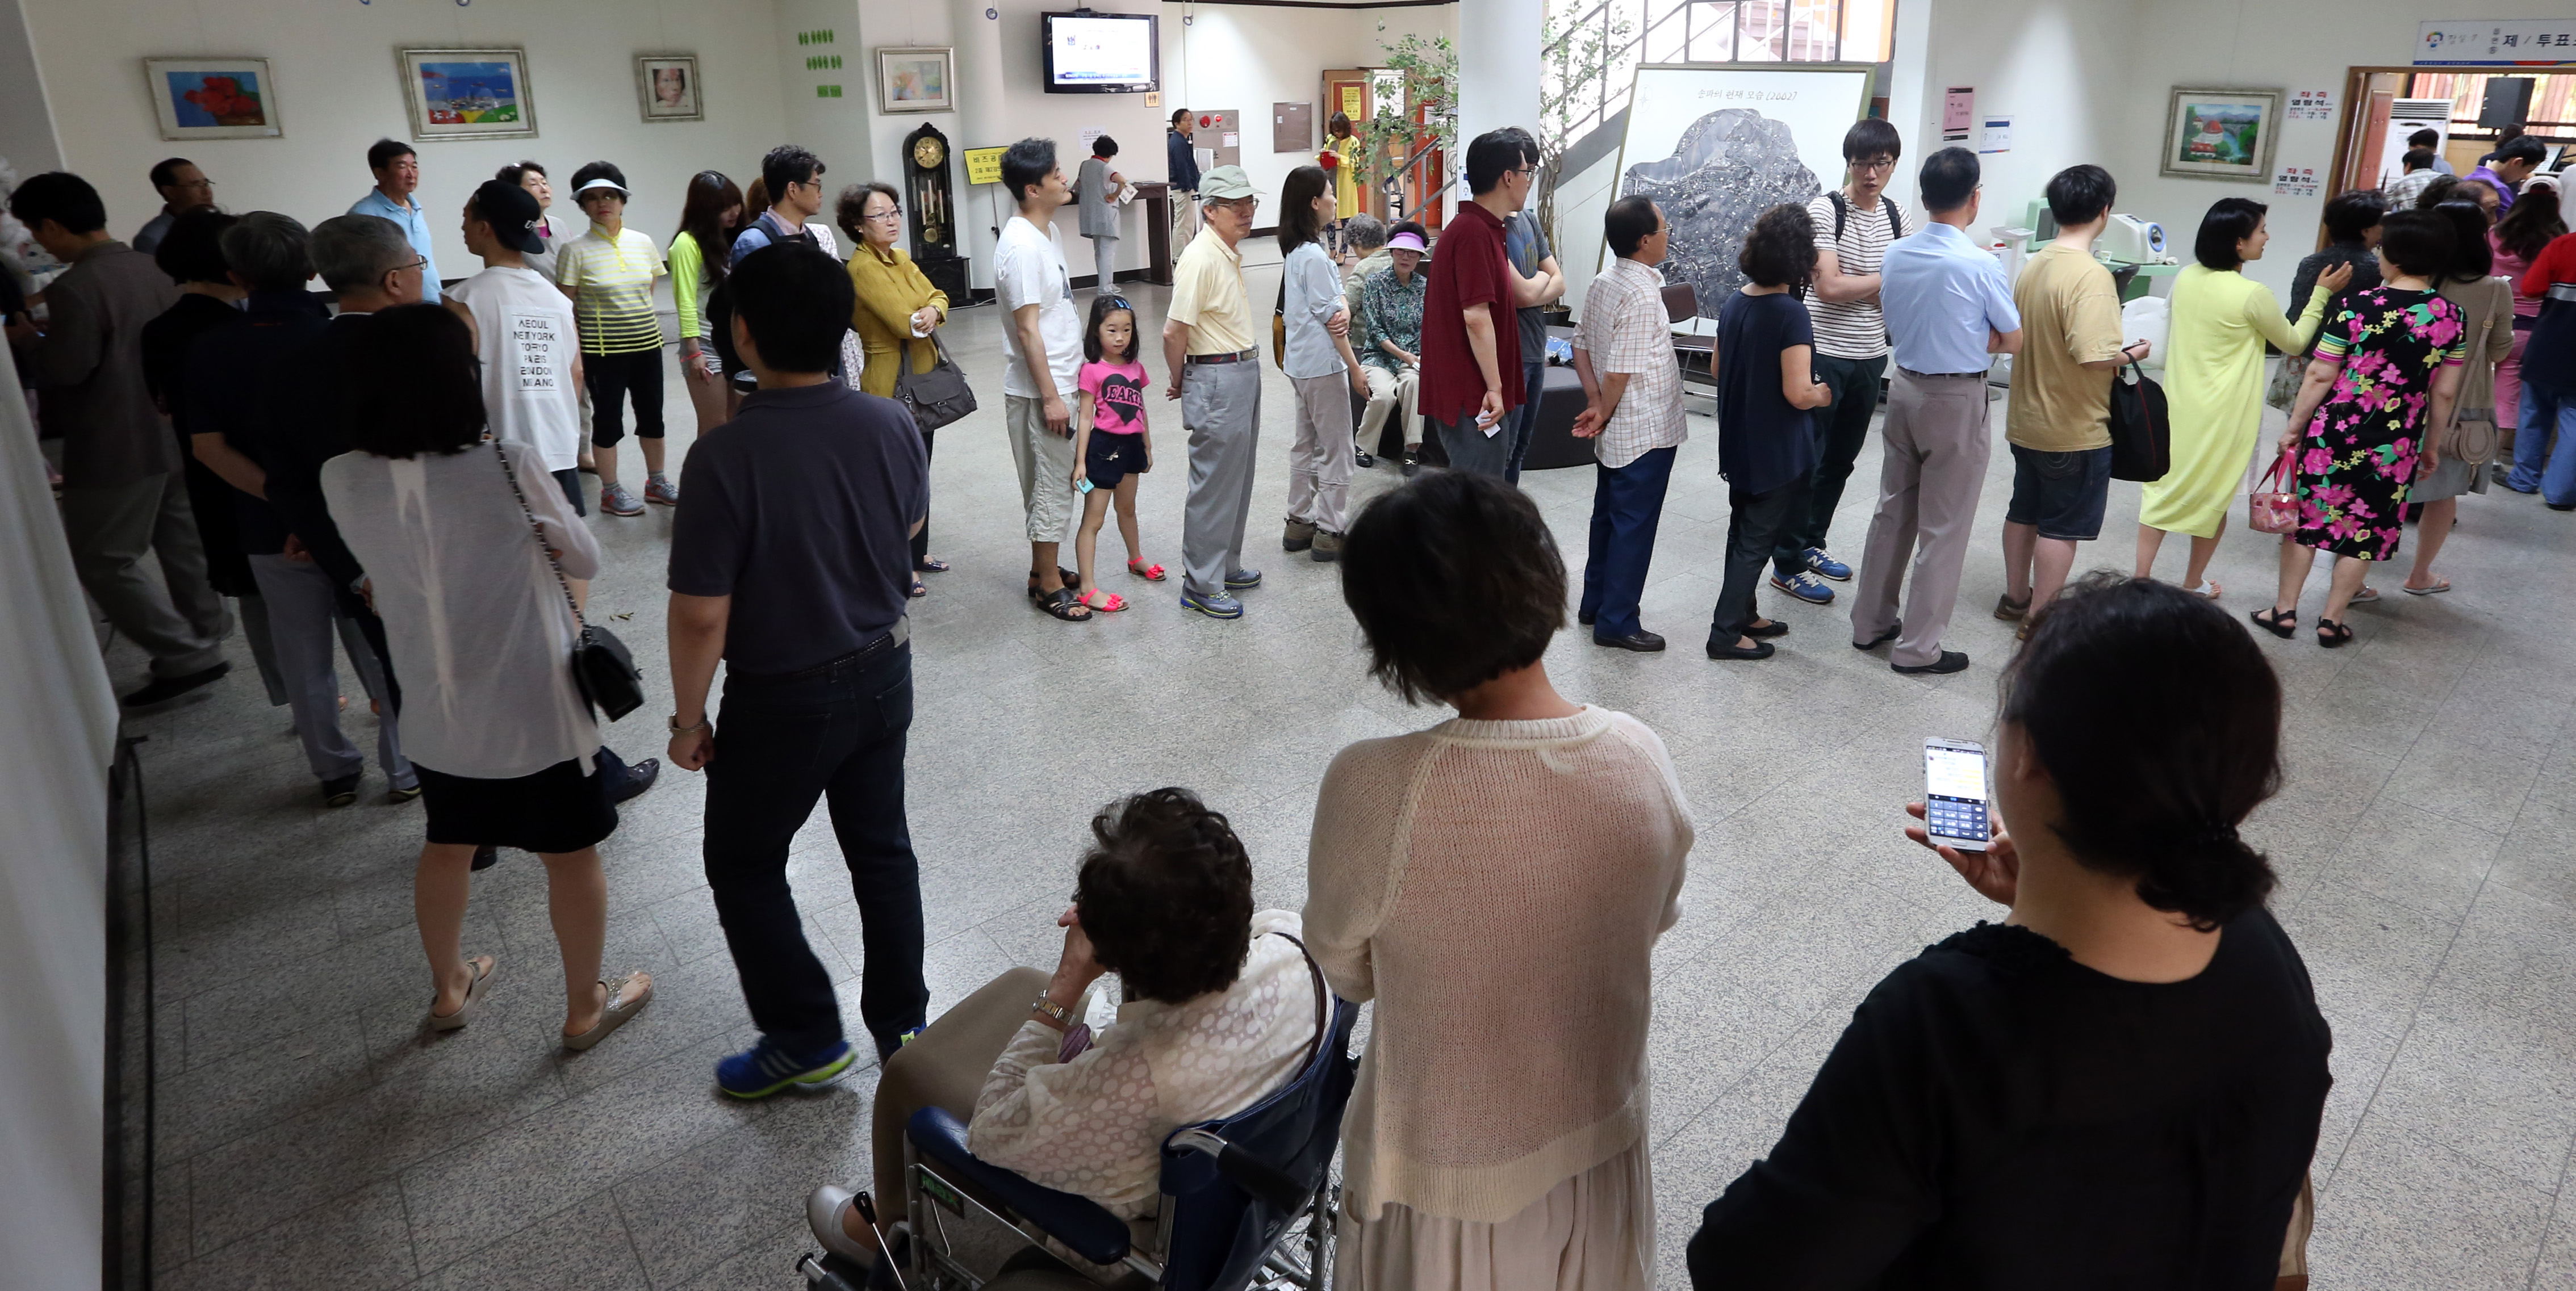 More than 23.4 million out of over 41.2 million eligible voters went to polling stations across South Korea, according to the National Election Commission . (Yonhap)